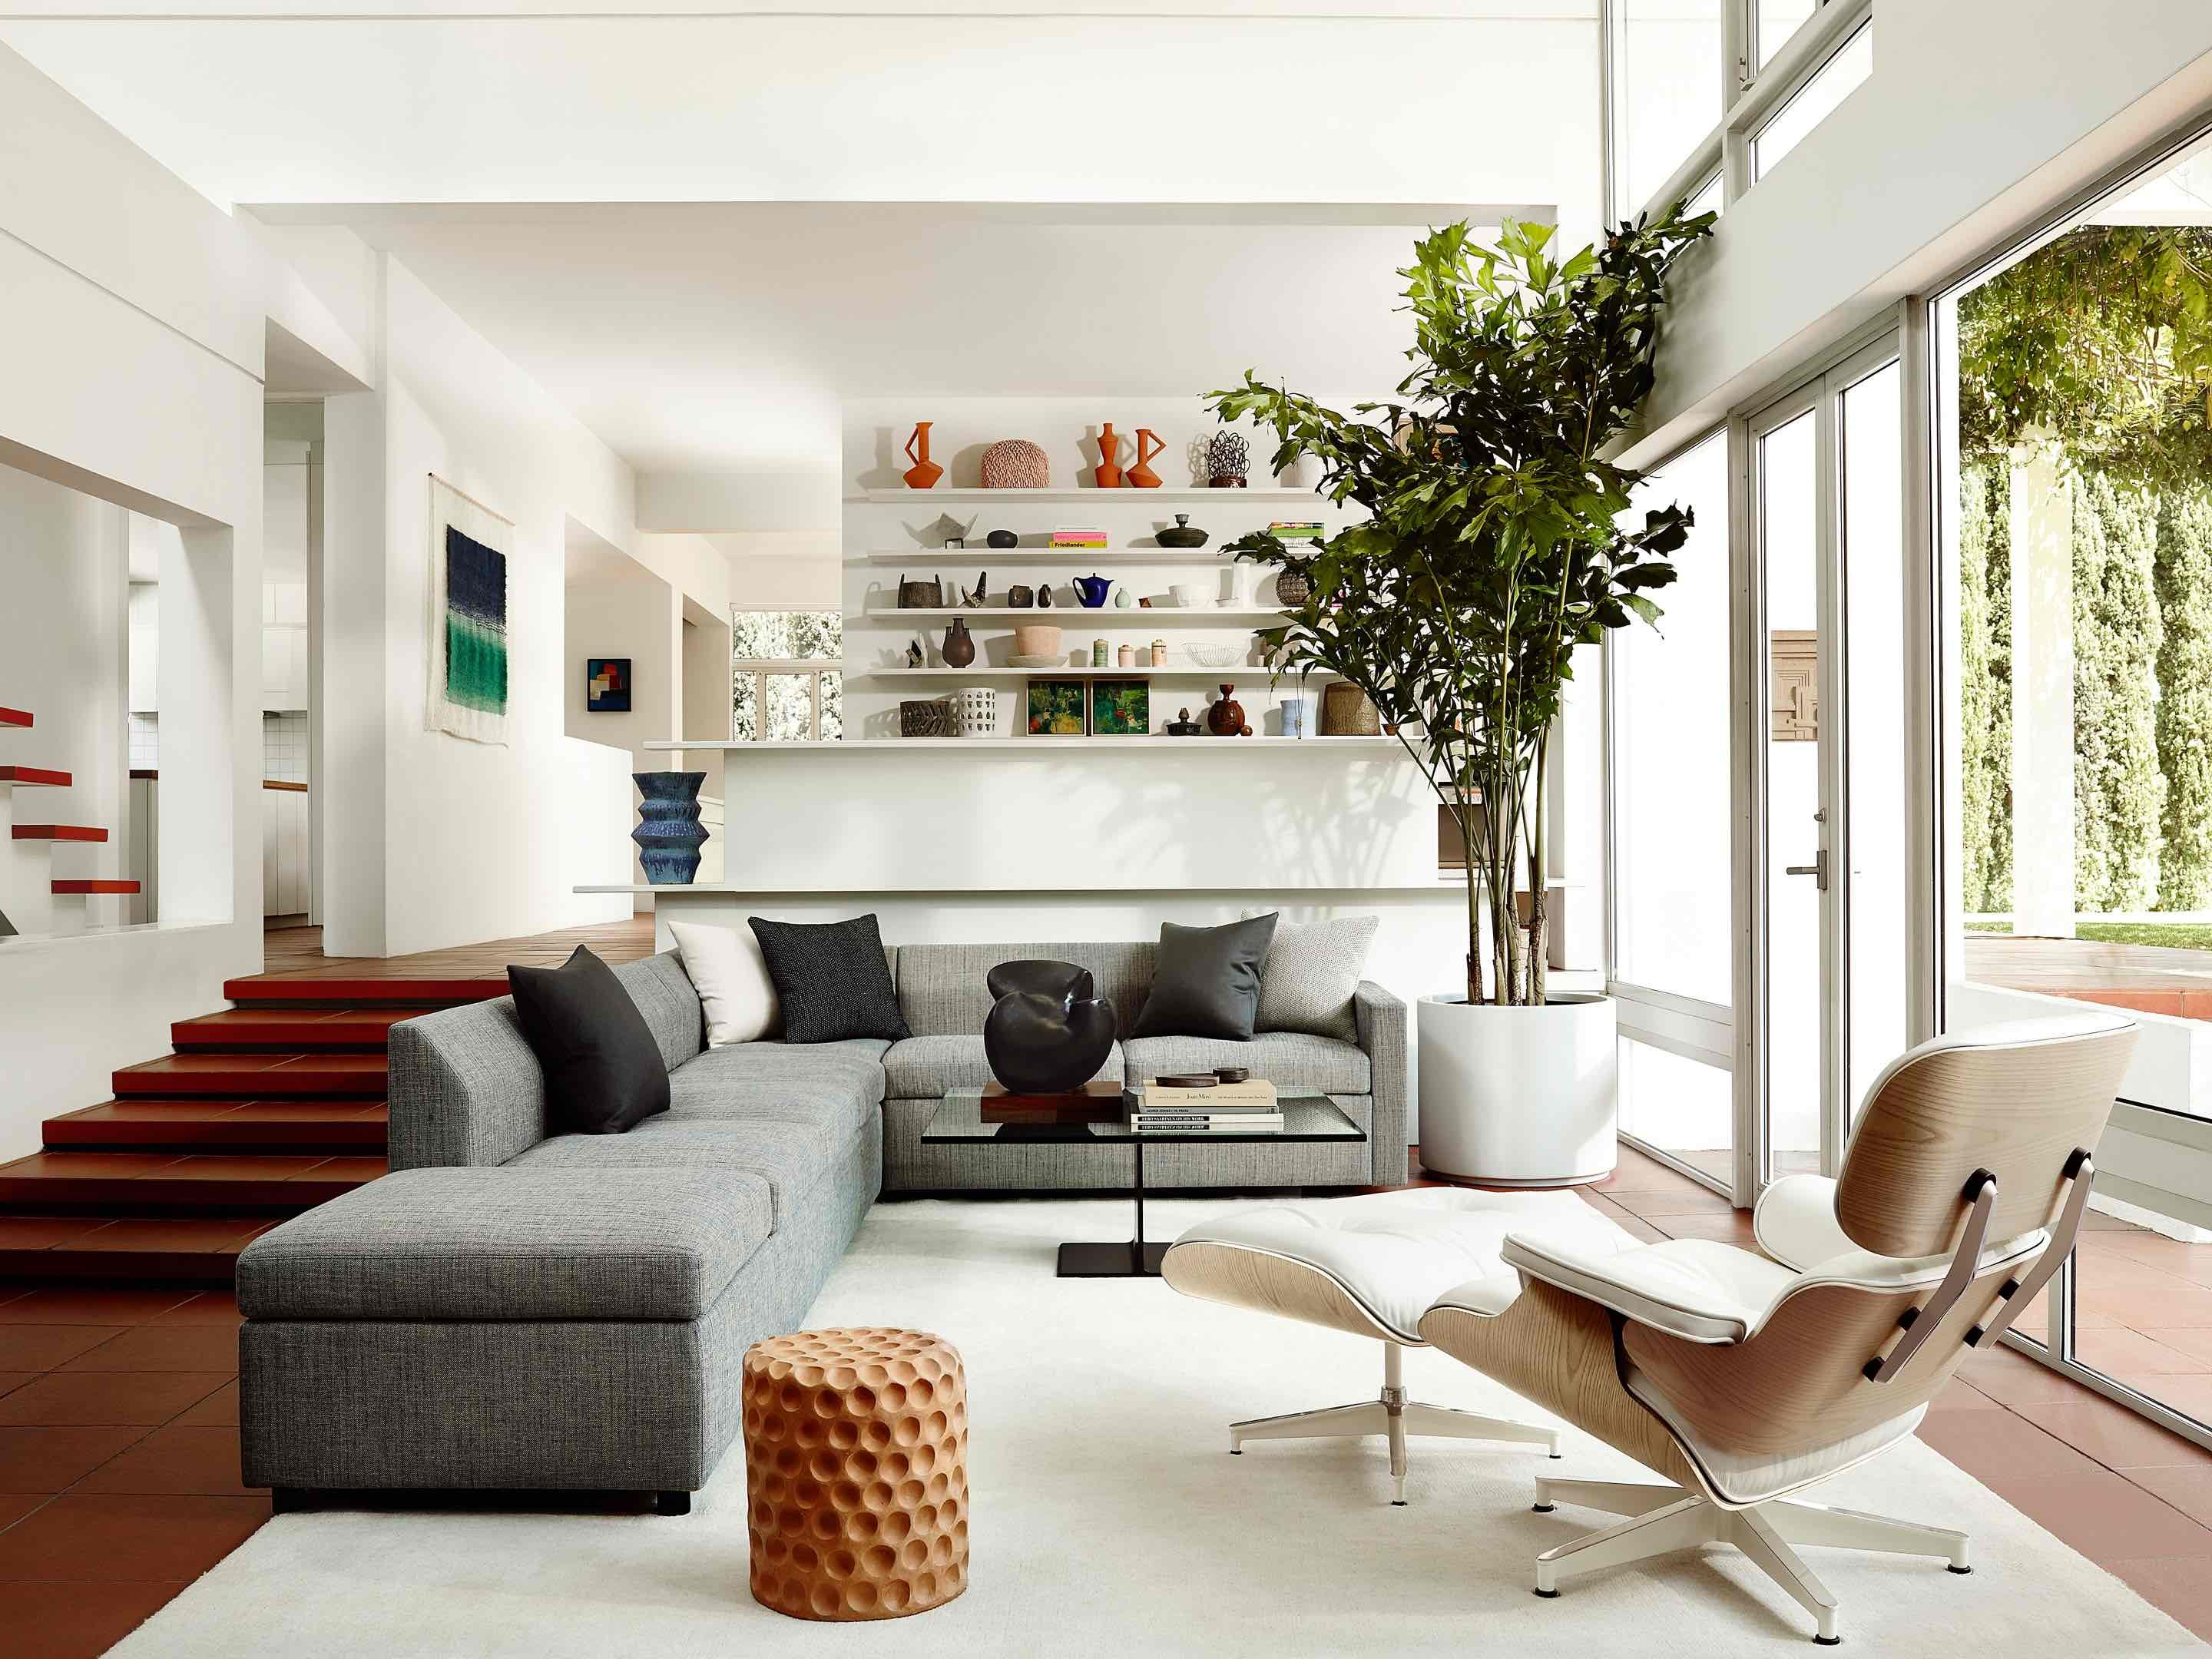 Eames Lounge Chair Living Room the eames lounge chair and ottoman live in stylish interiors